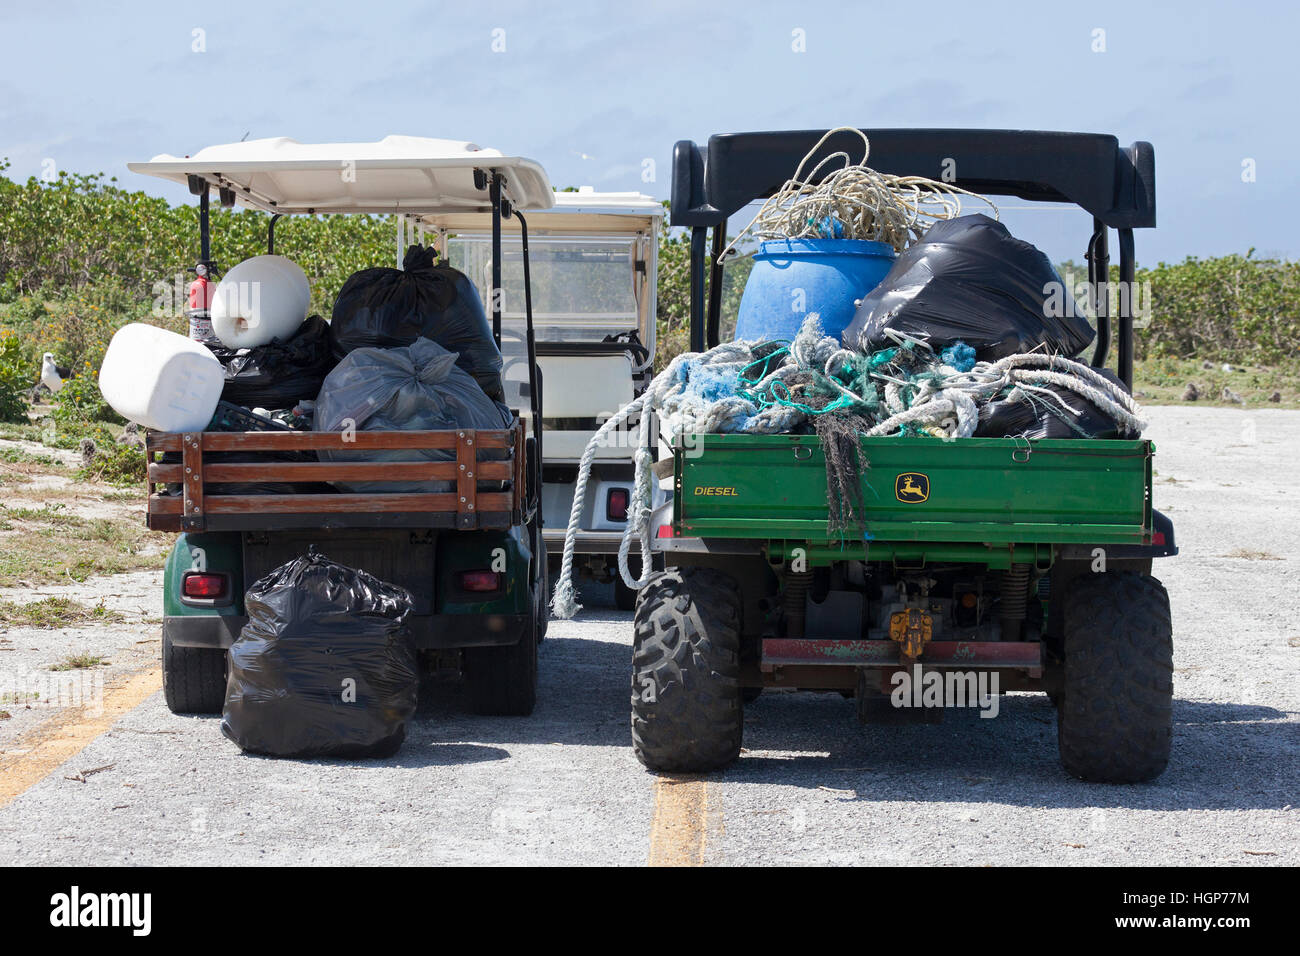 Marine debris collected from island shores by volunteers to prevent plastic, ropes and nets from harming wildlife - Stock Image